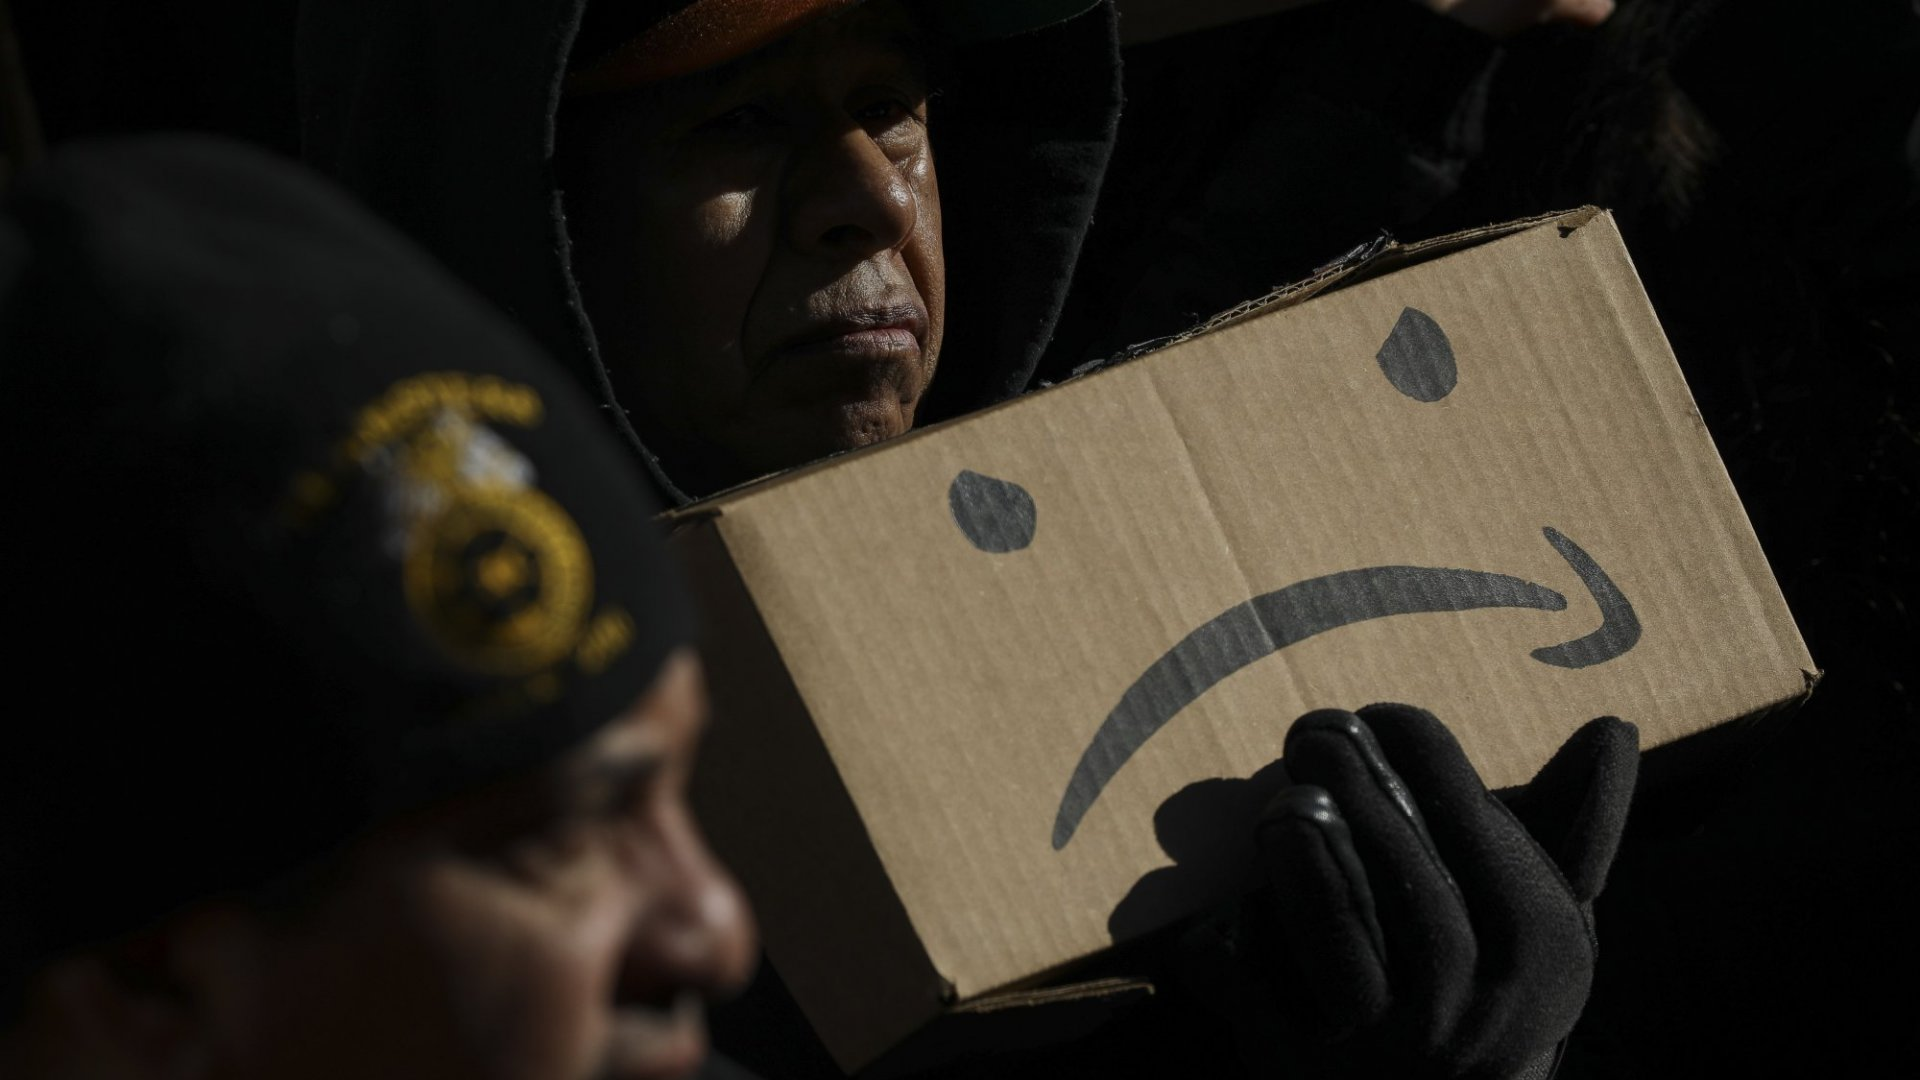 More Than 1,500 Amazon Employees Are Planning to Walk Out to Protest the Company's Climate Change Inaction